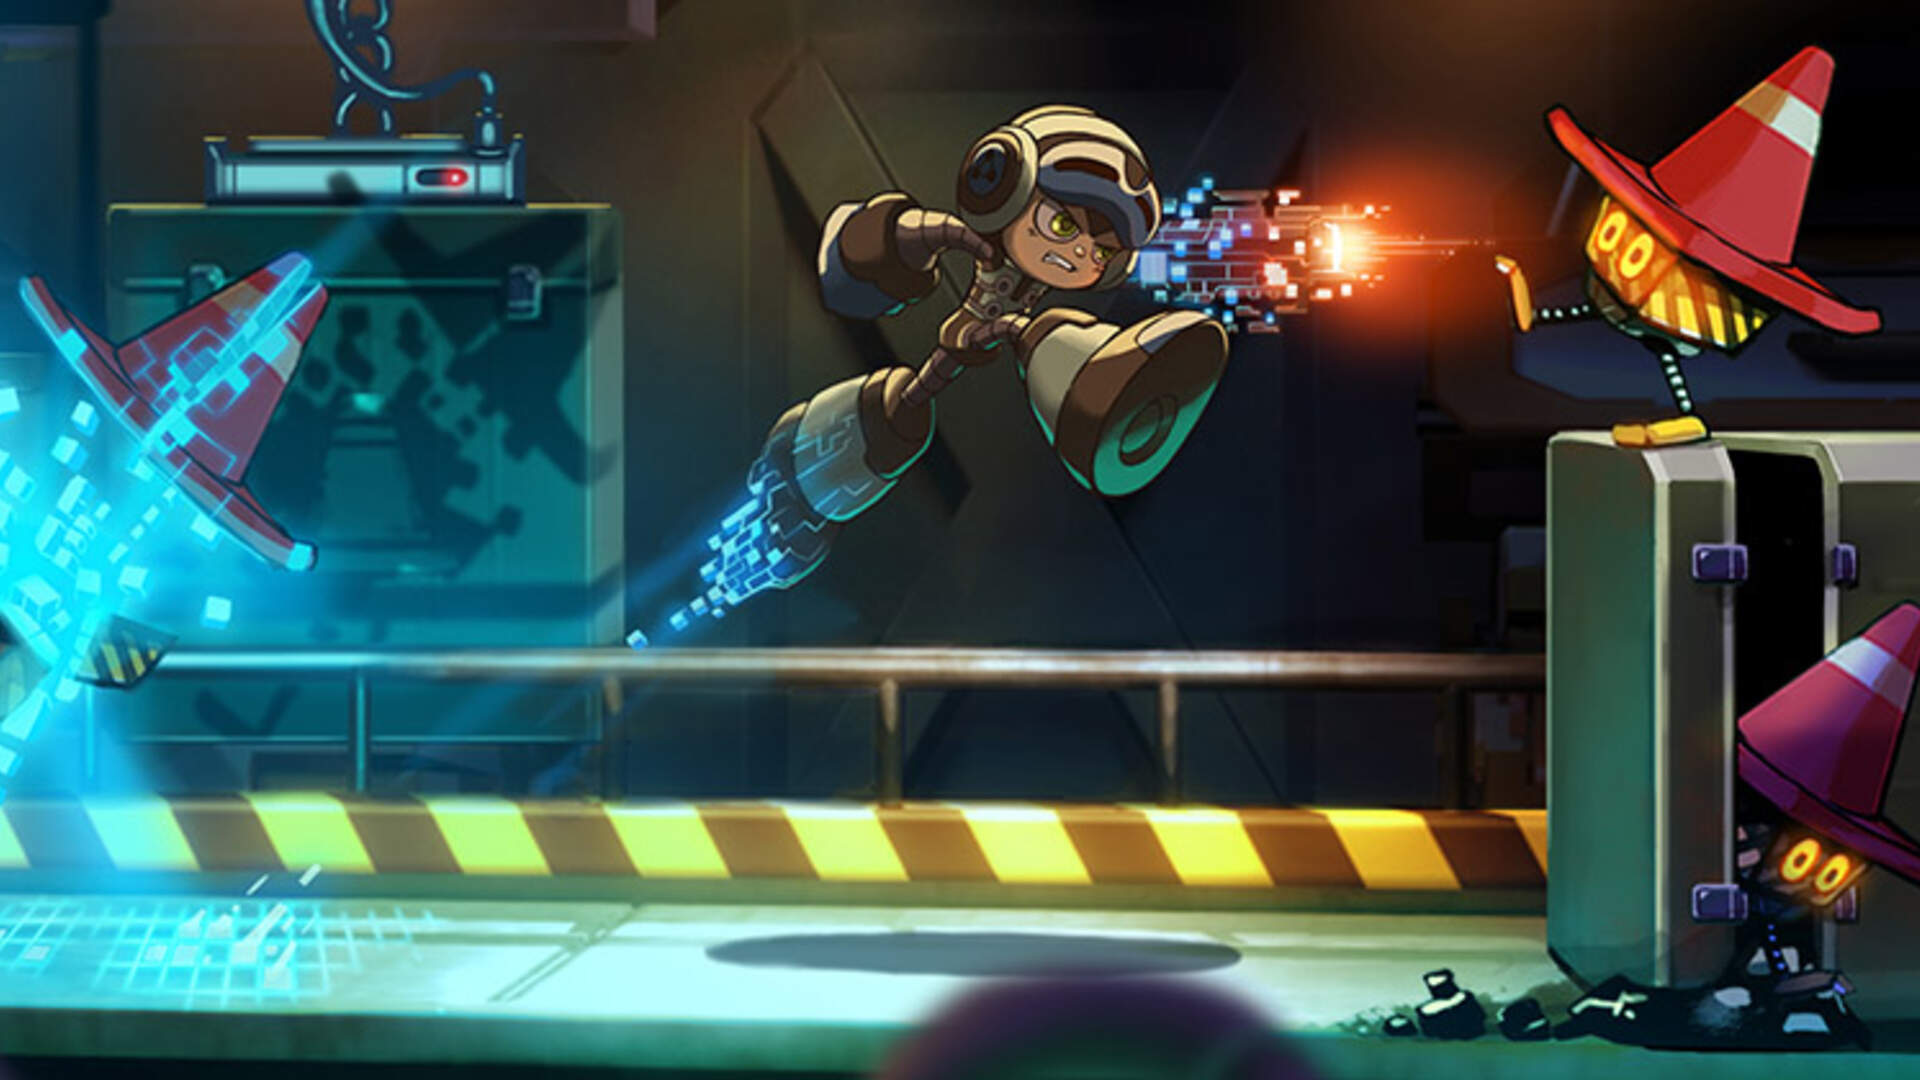 Why Mighty No. 9 Should be Clear for Takeoff